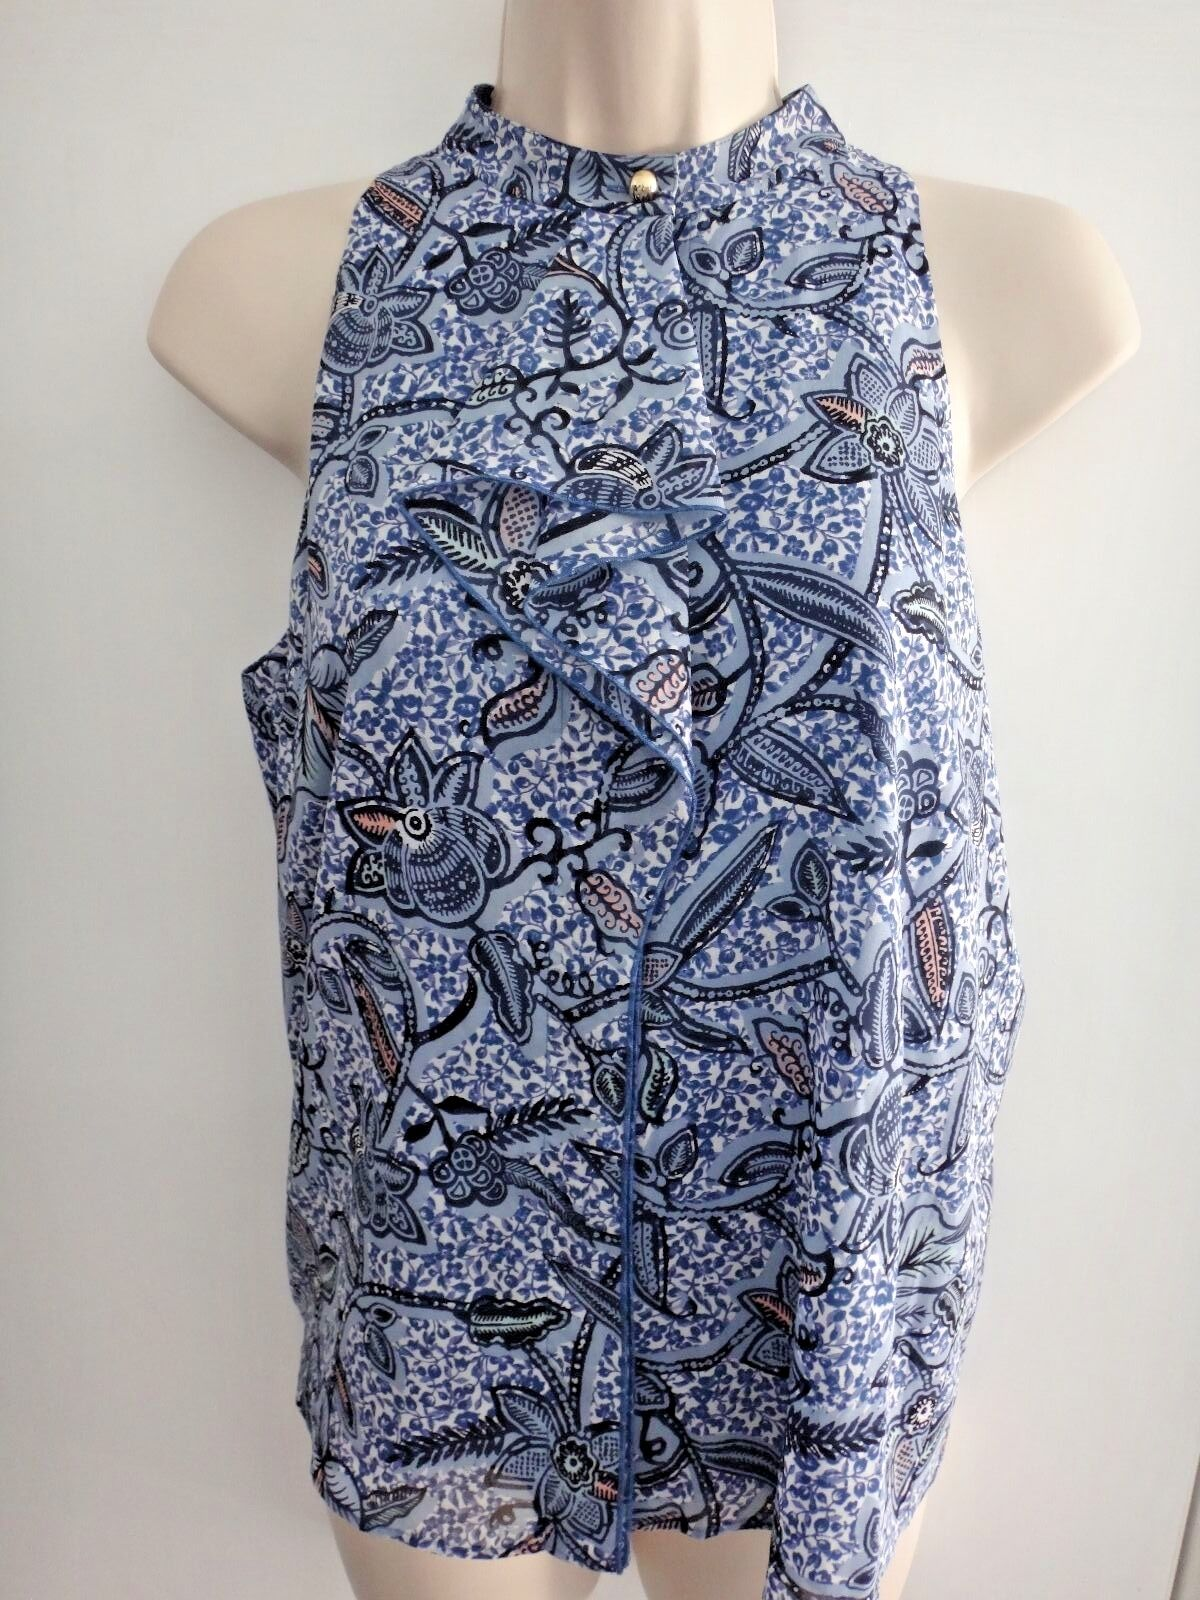 Tory Burch Chelsea sleeveless top bluee haven paisley multi Small NWT style 30711